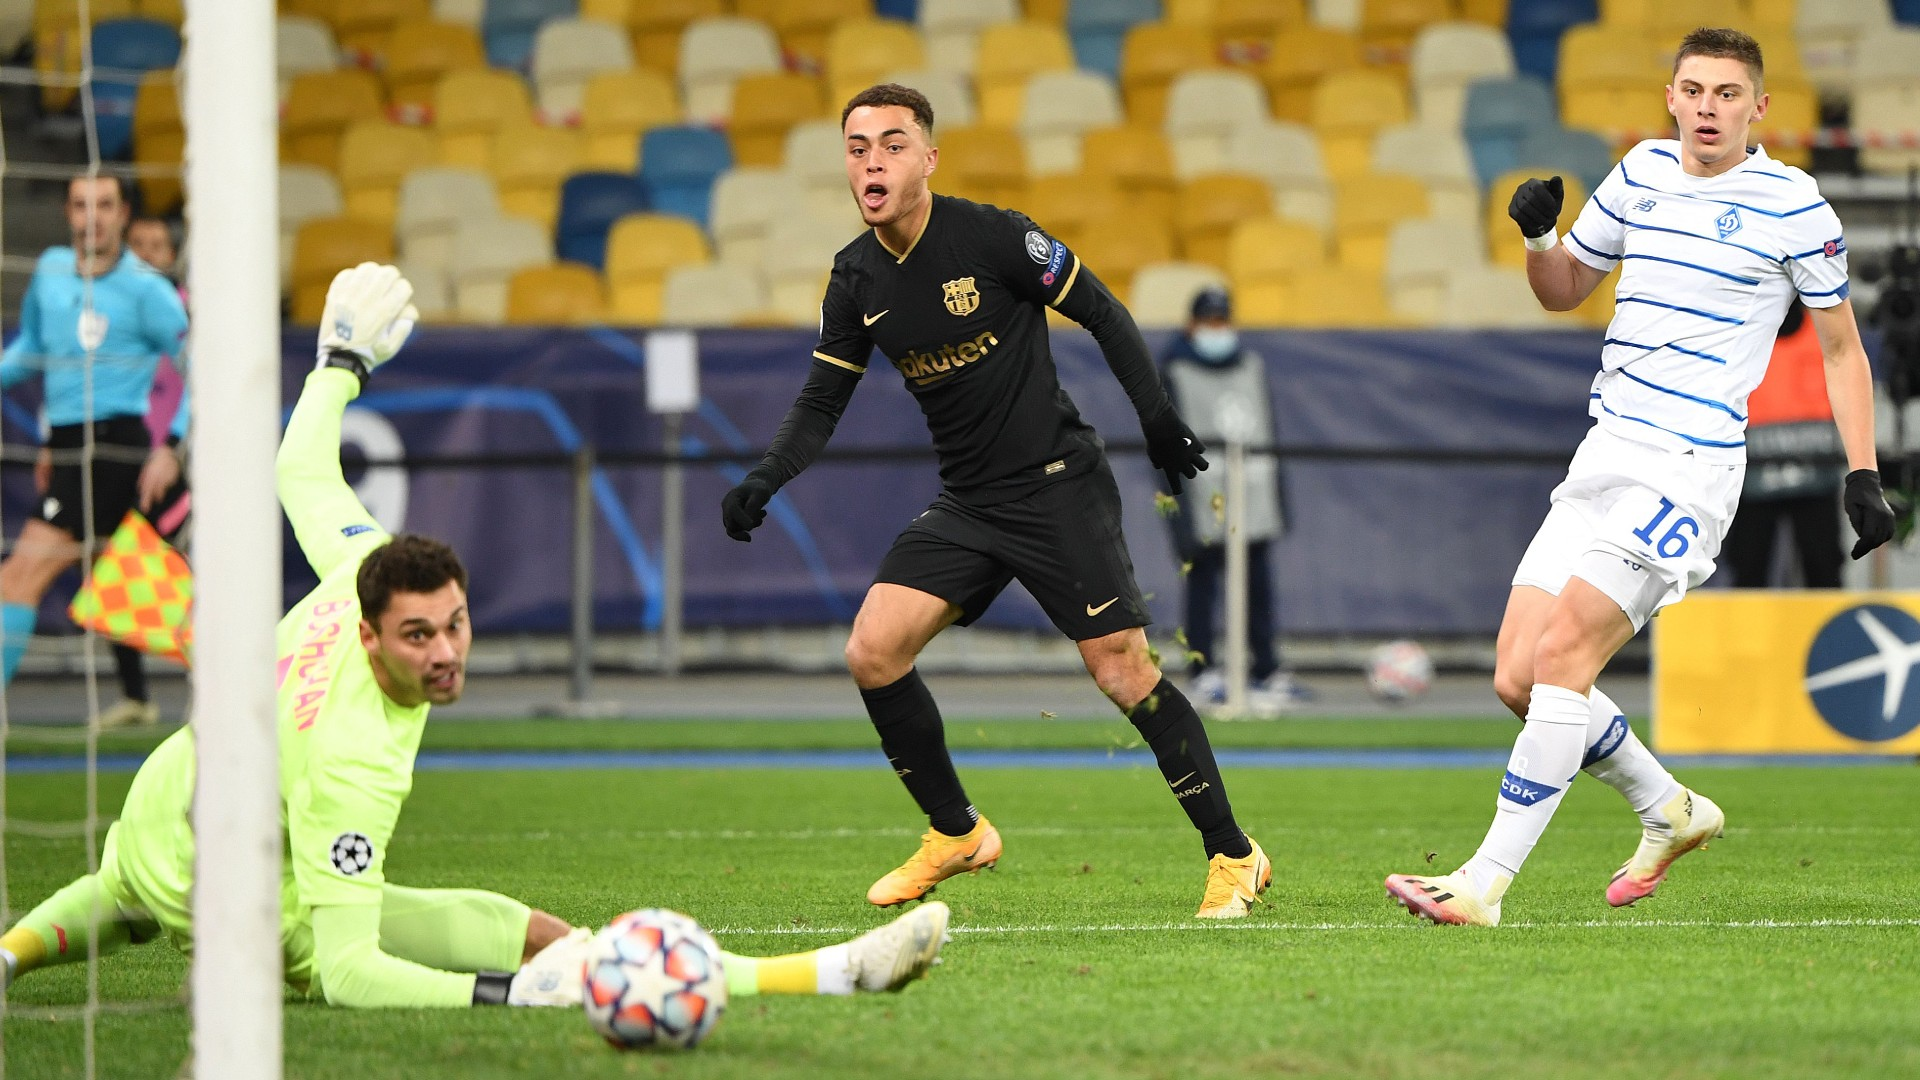 'It's a perfect day' - USMNT star Dest delighted to open Barcelona account in Champions League win at Kiev